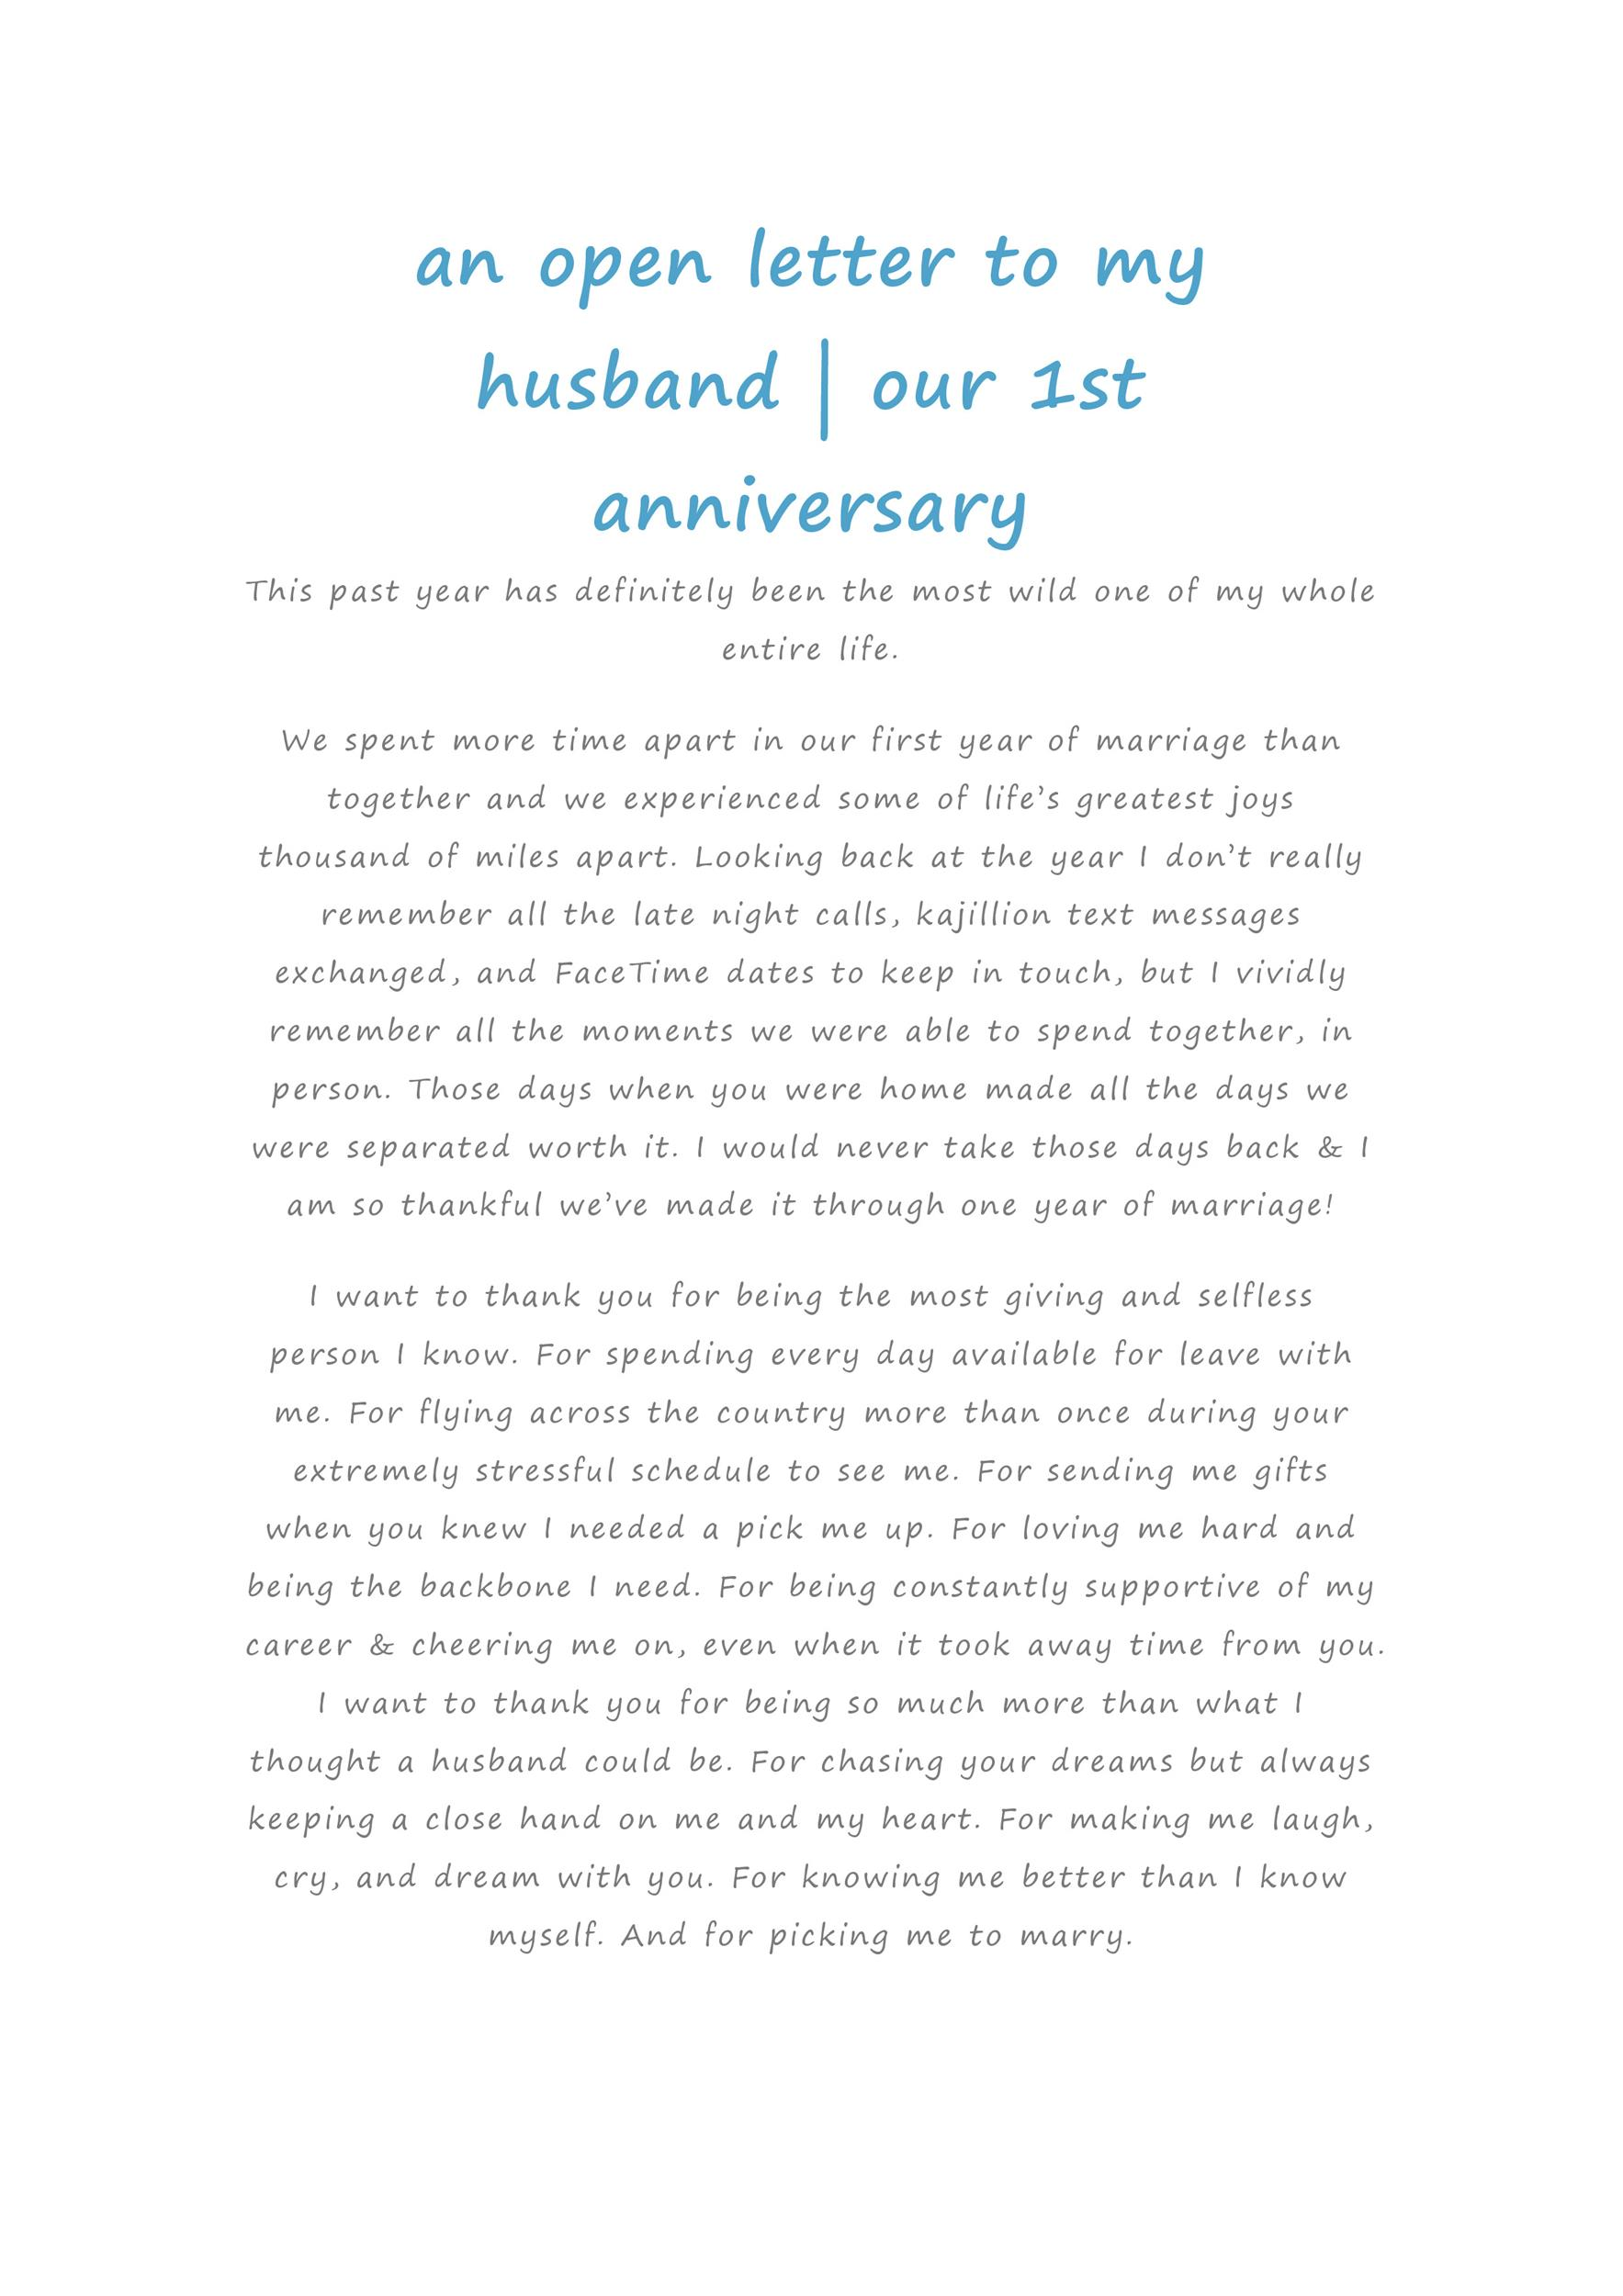 Happy Anniversary To My Husband Letter from templatelab.com